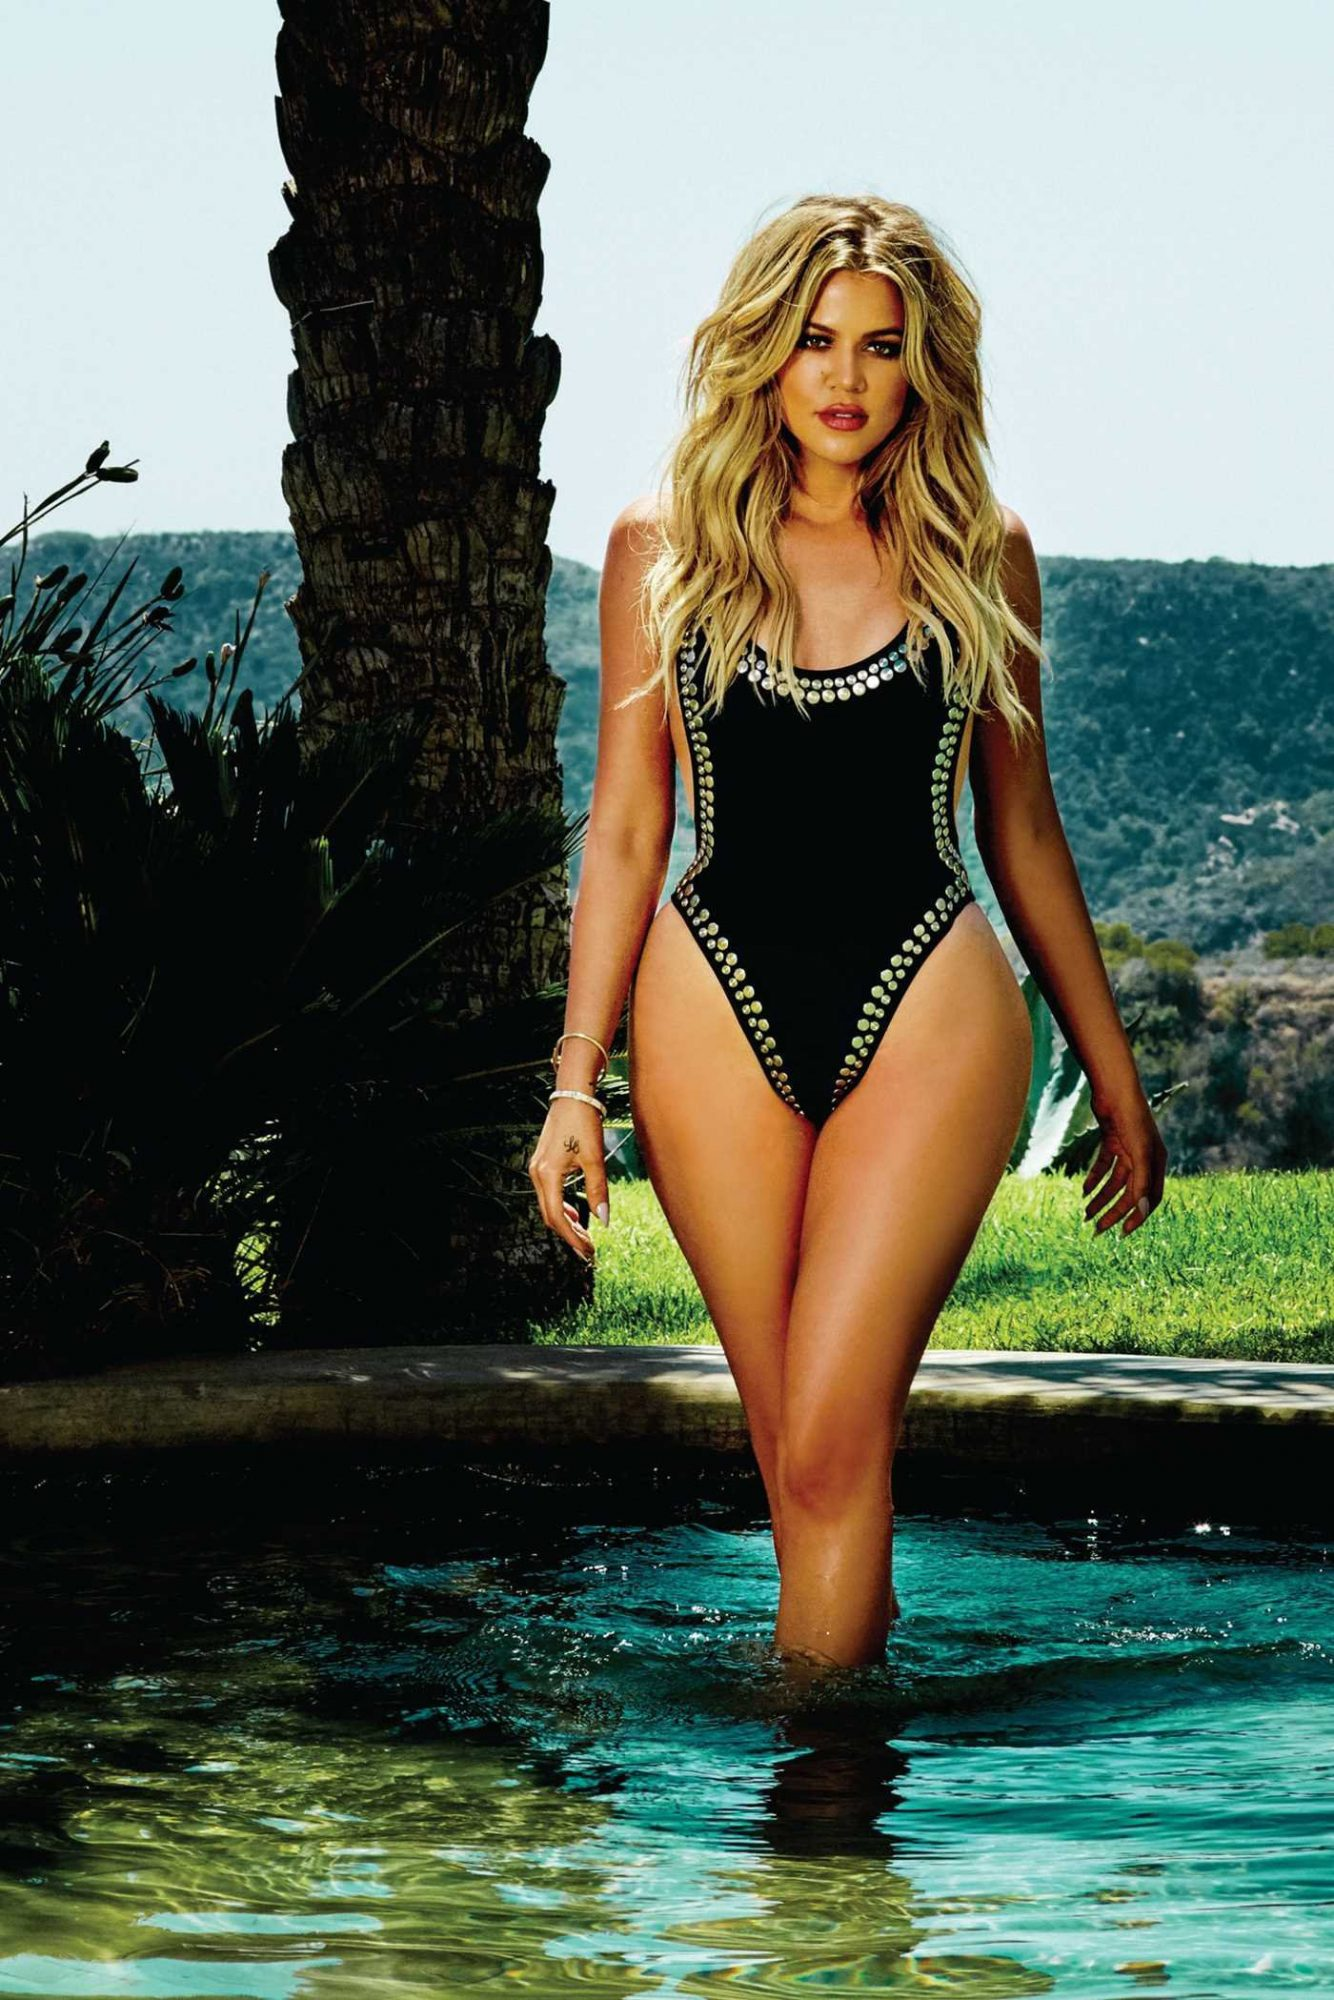 Khloe Kardashian Shows Us Just How Sexy Strong Is in a One-Piece Bathing Suit